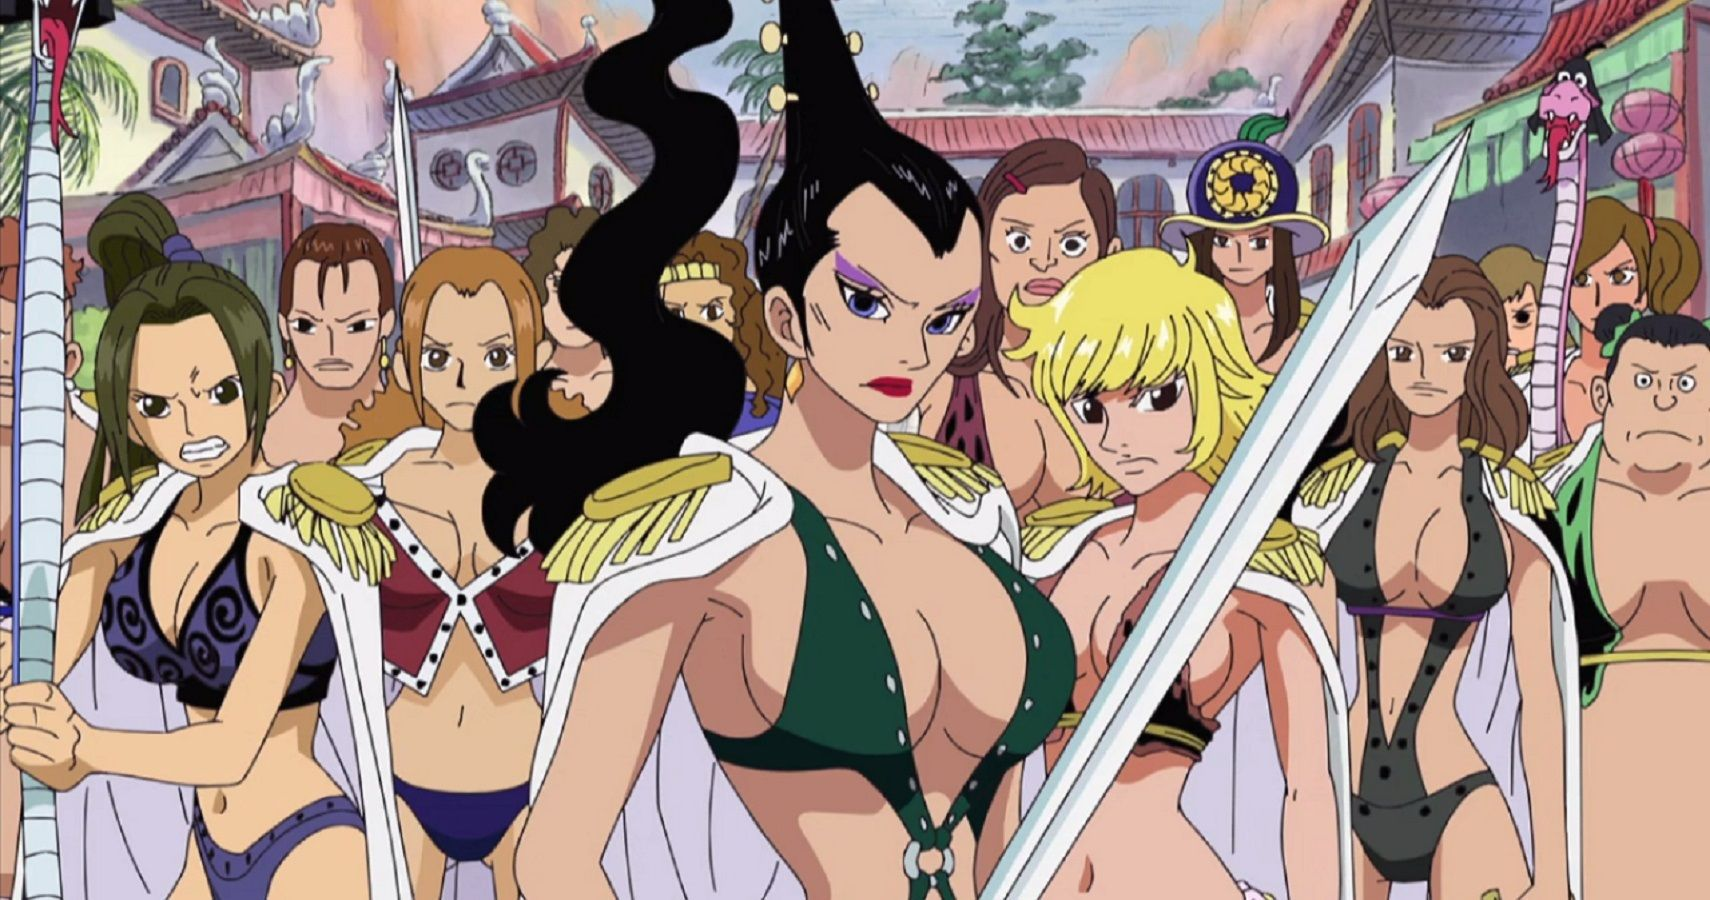 Amazon Lily Kuja from One Piece anime